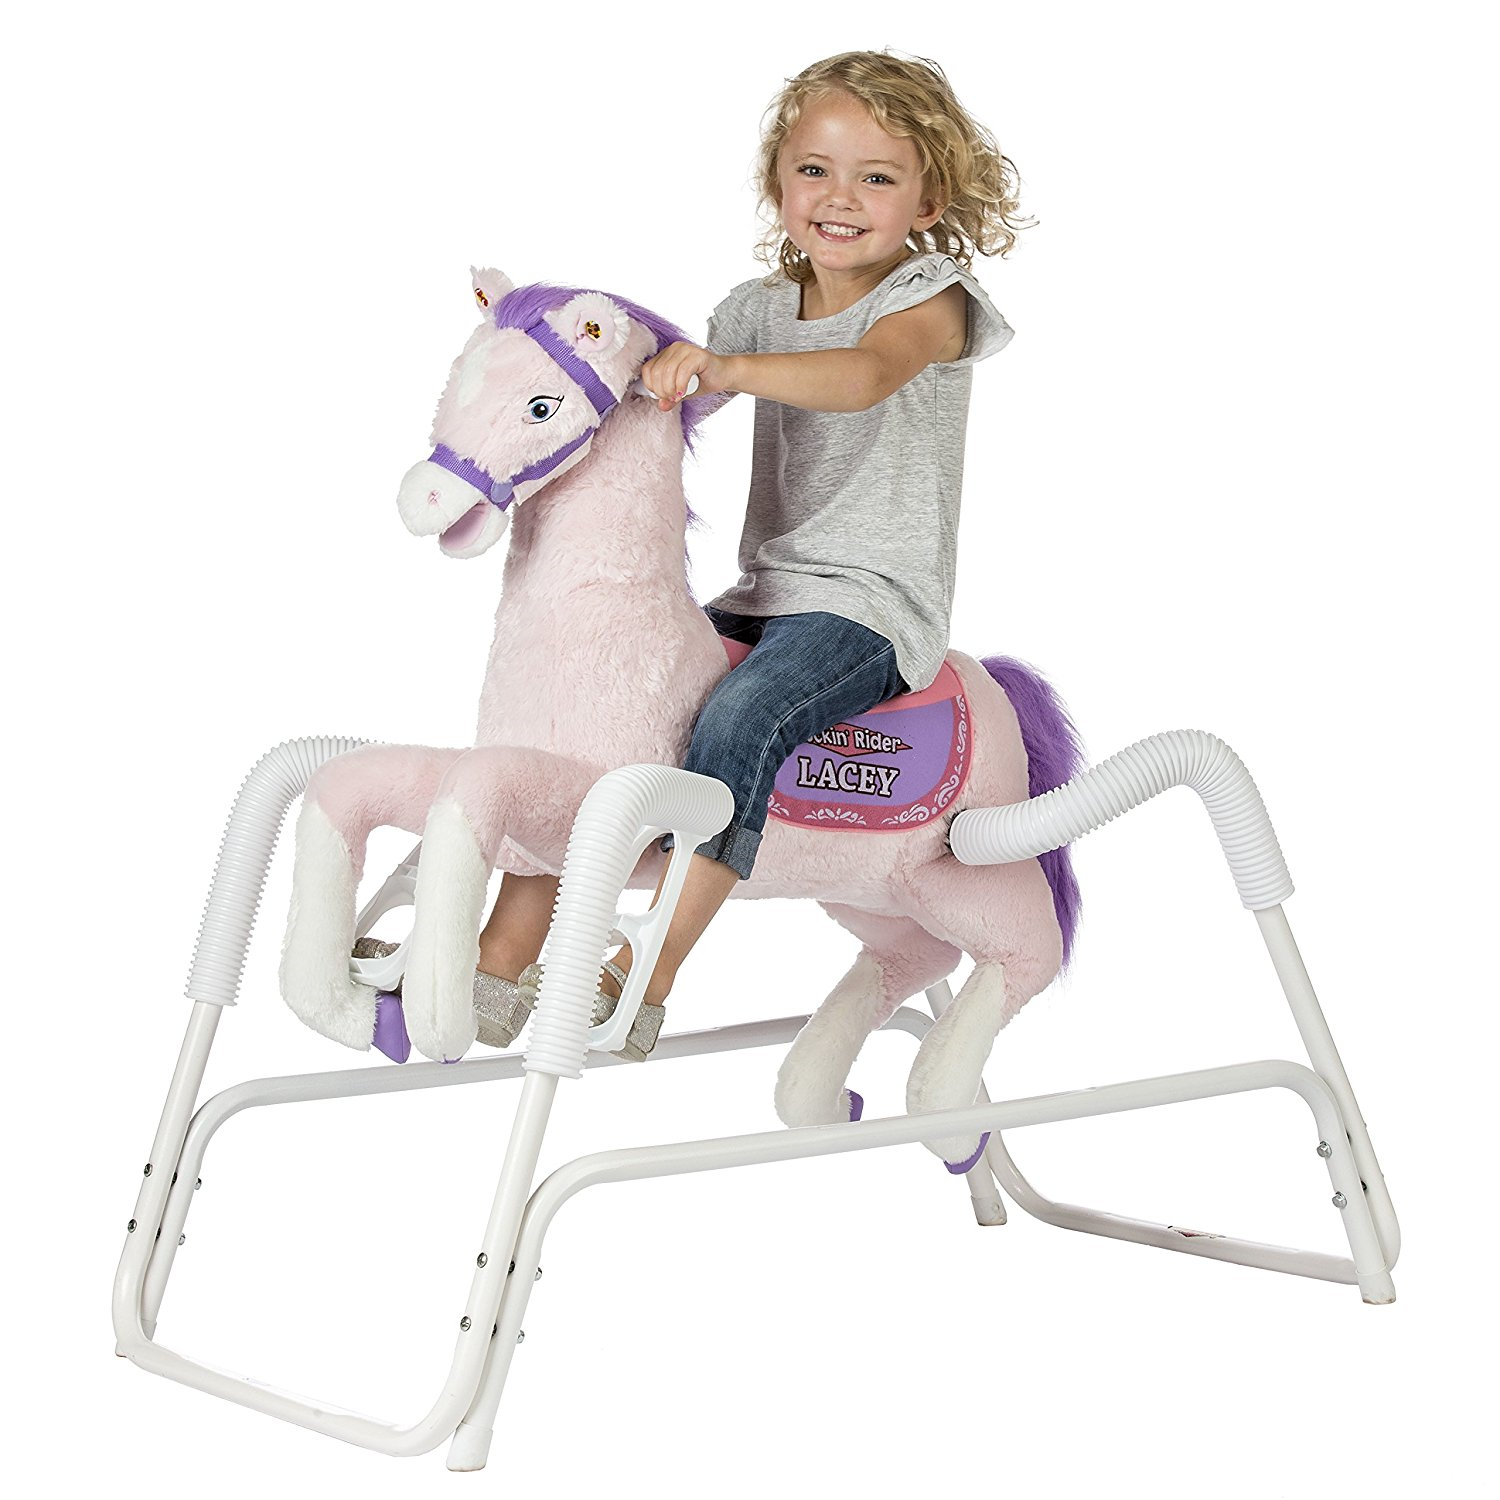 Rockin' Rider pink spring rocking horse for toddlers kids ride on toy | Kids Rocking Horse Toys